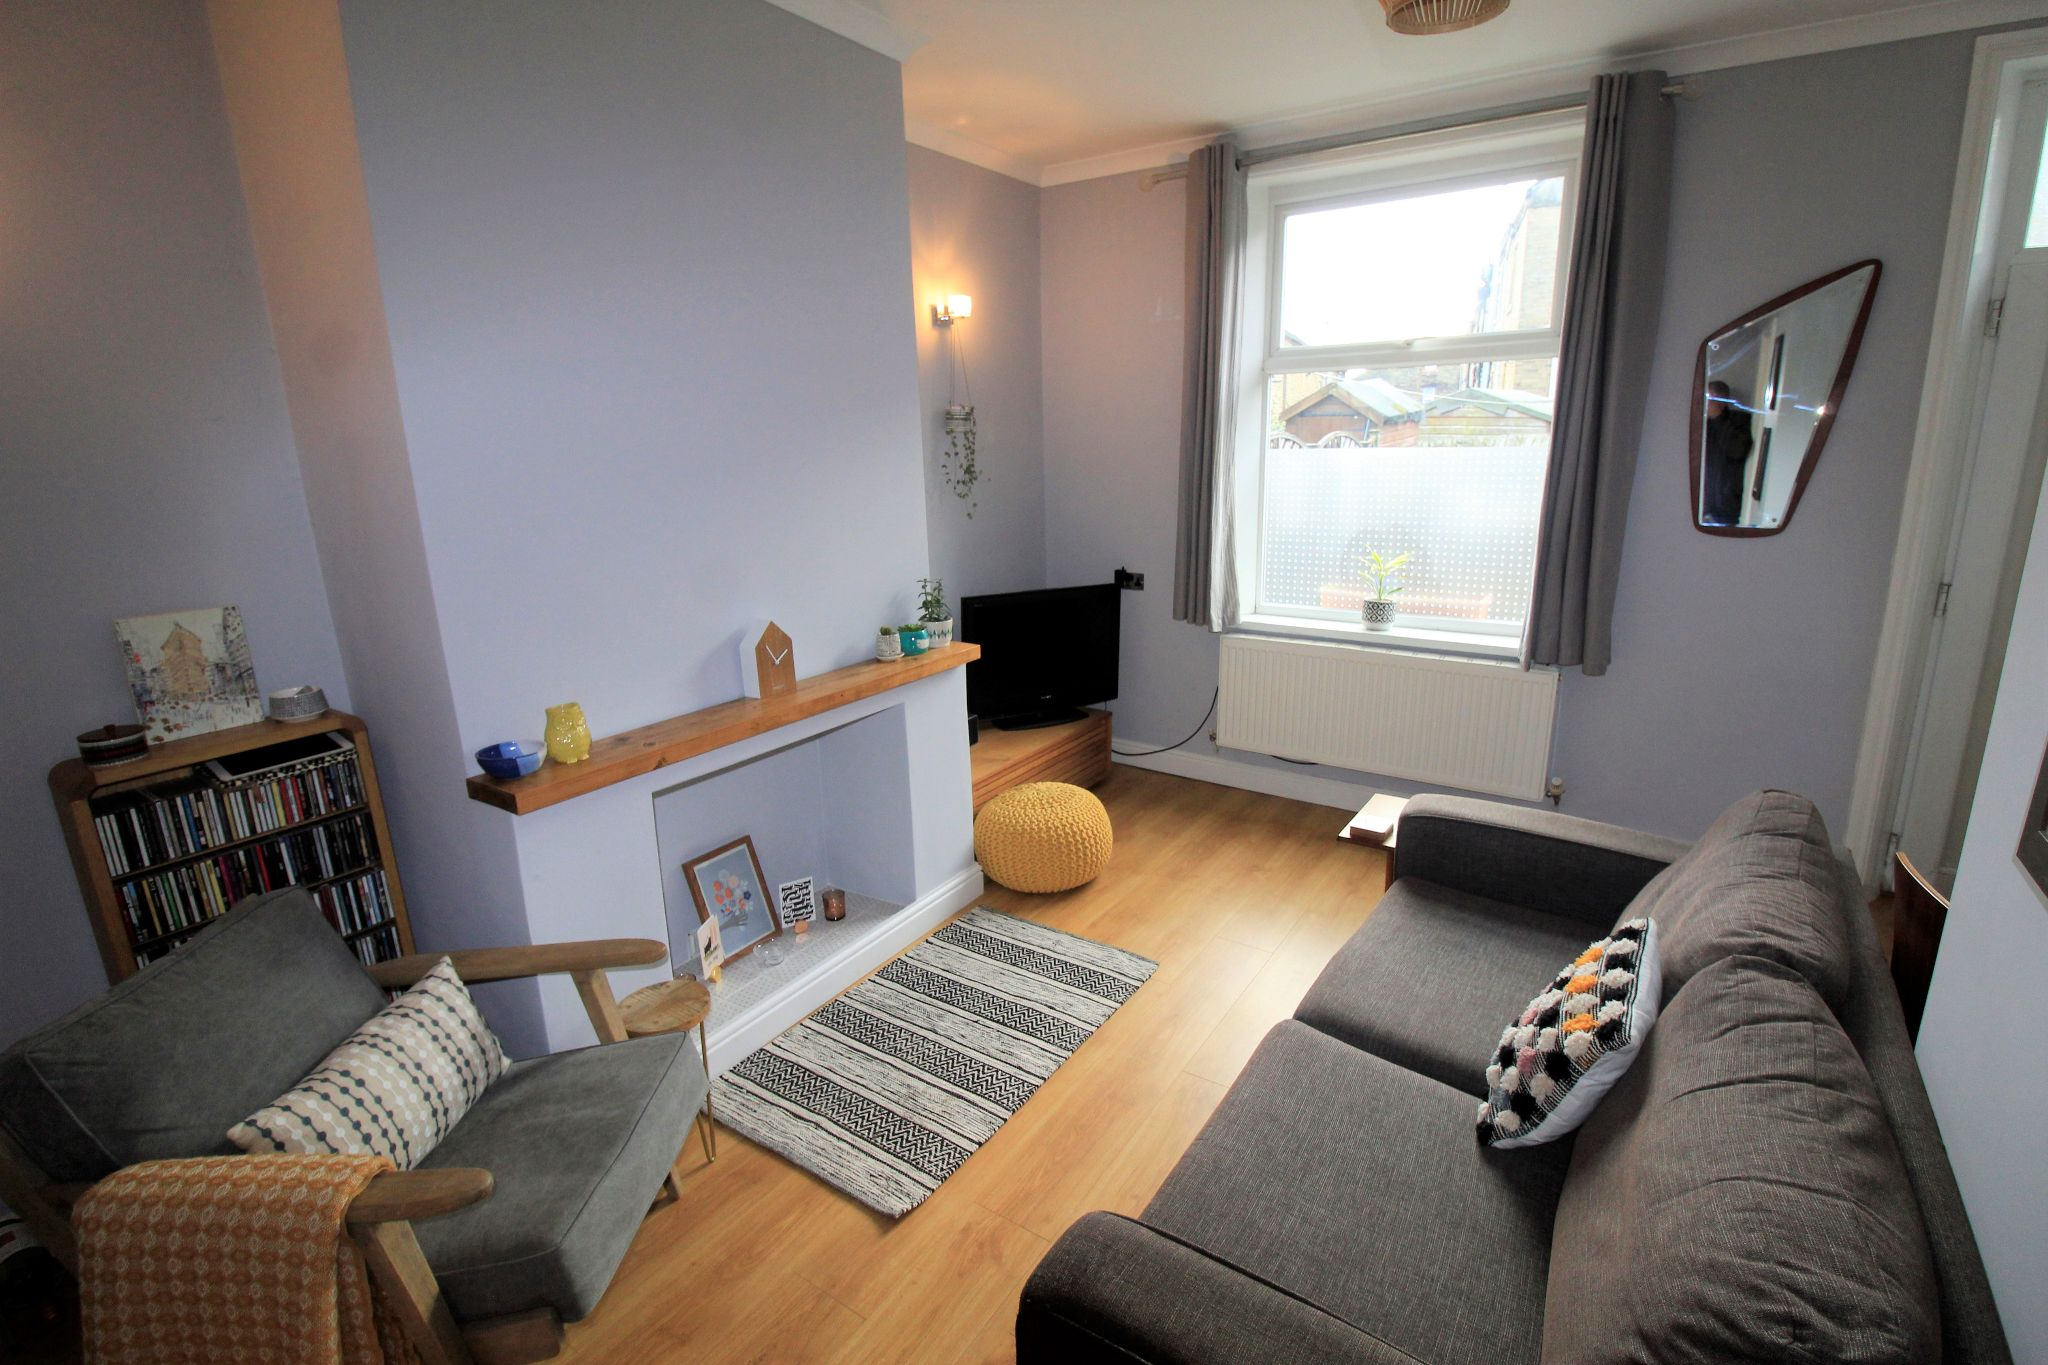 2 bedroom mid terraced house Sale Agreed in Brighouse - Lounge